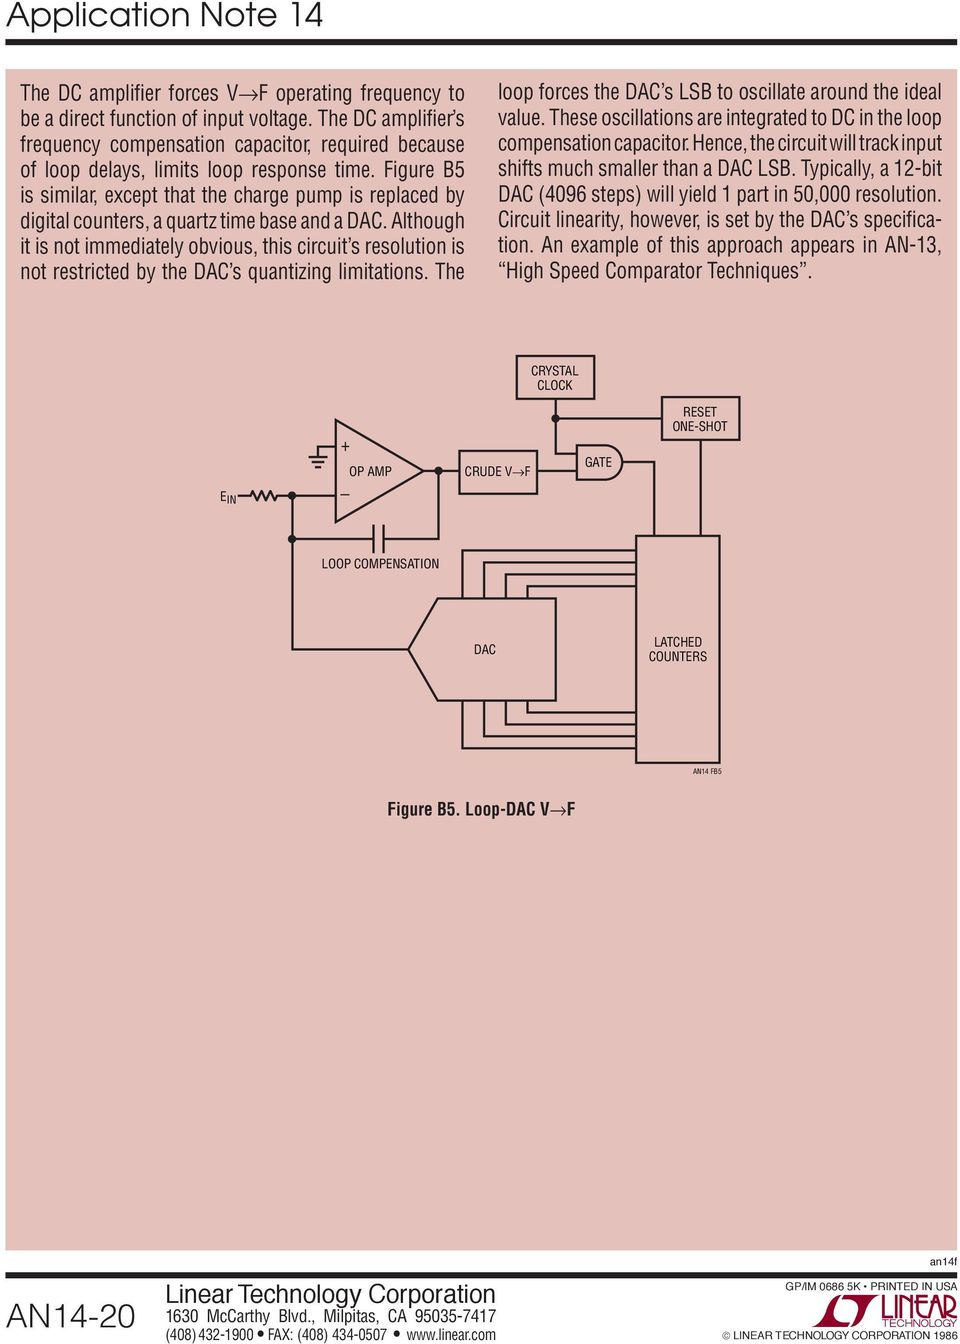 Designs For High Performance Voltage To Frequency Converters Pdf National Lm555 Datasheet Replacement Se555 Ne555 Series And The Connection Diagram Figure B5 Is Similar Except That Charge Pump Replaced By Digital Counters